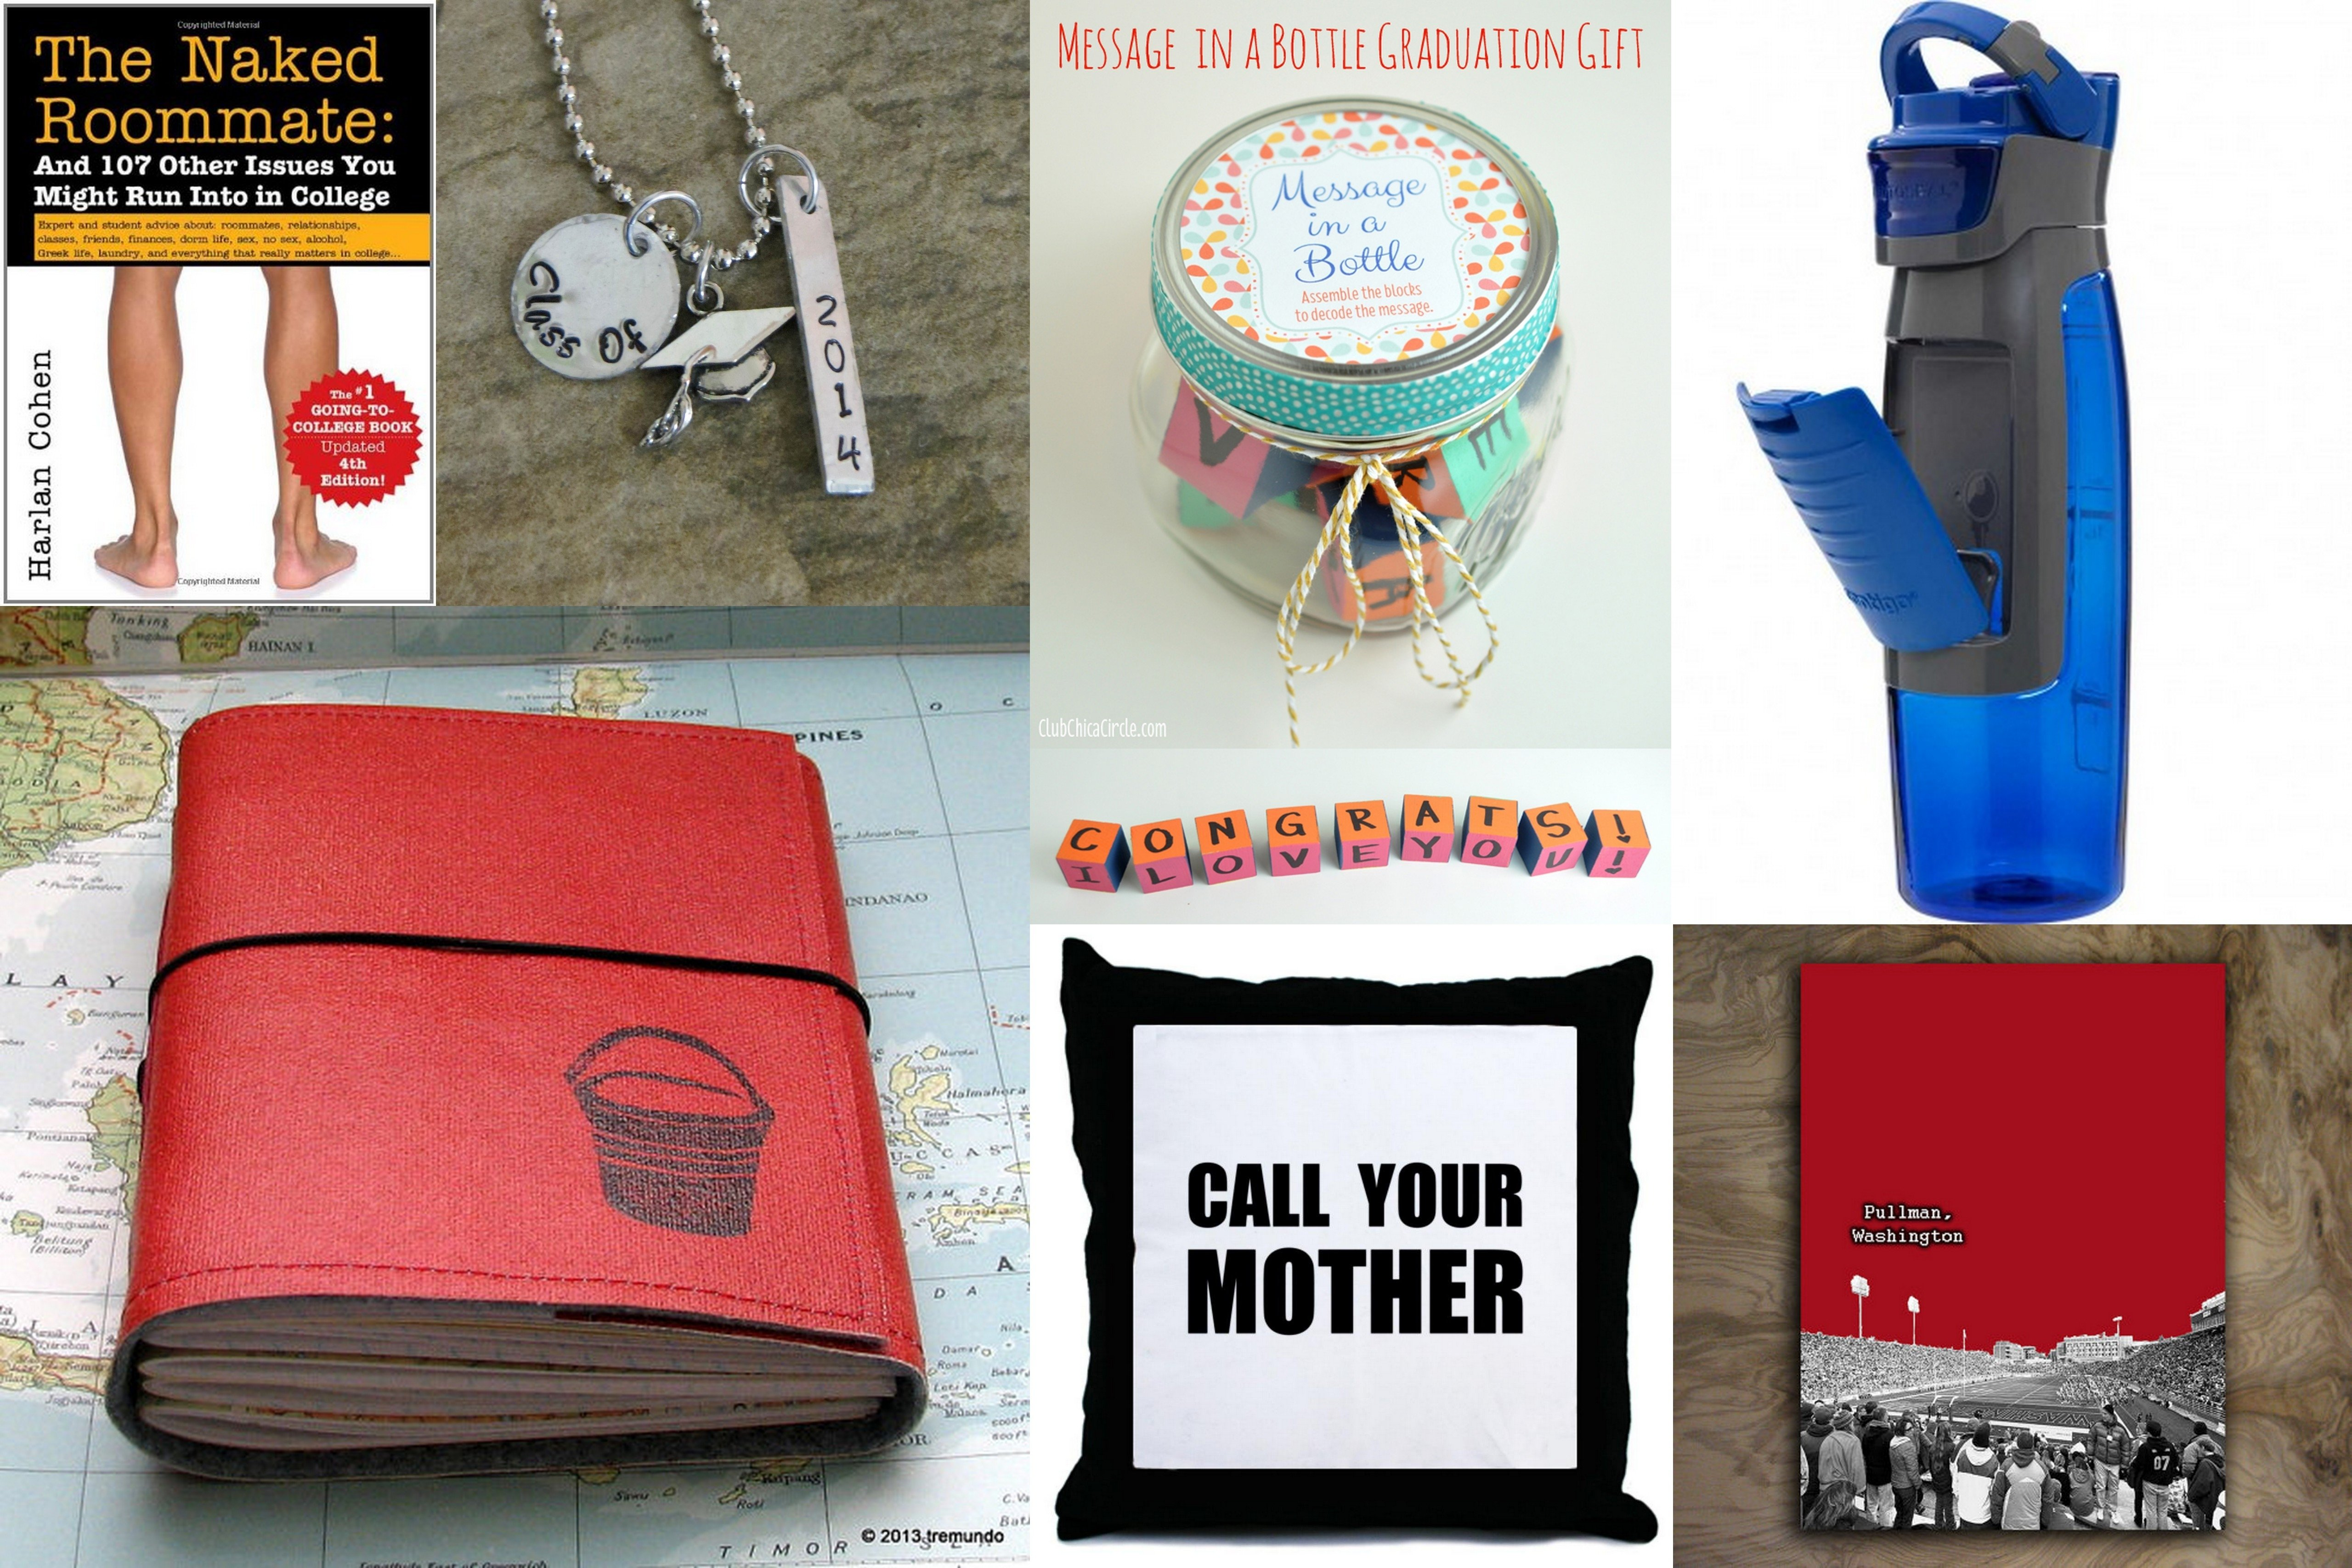 10 Stunning Gift Ideas For College Graduates graduation presents for college grads term paper writing service